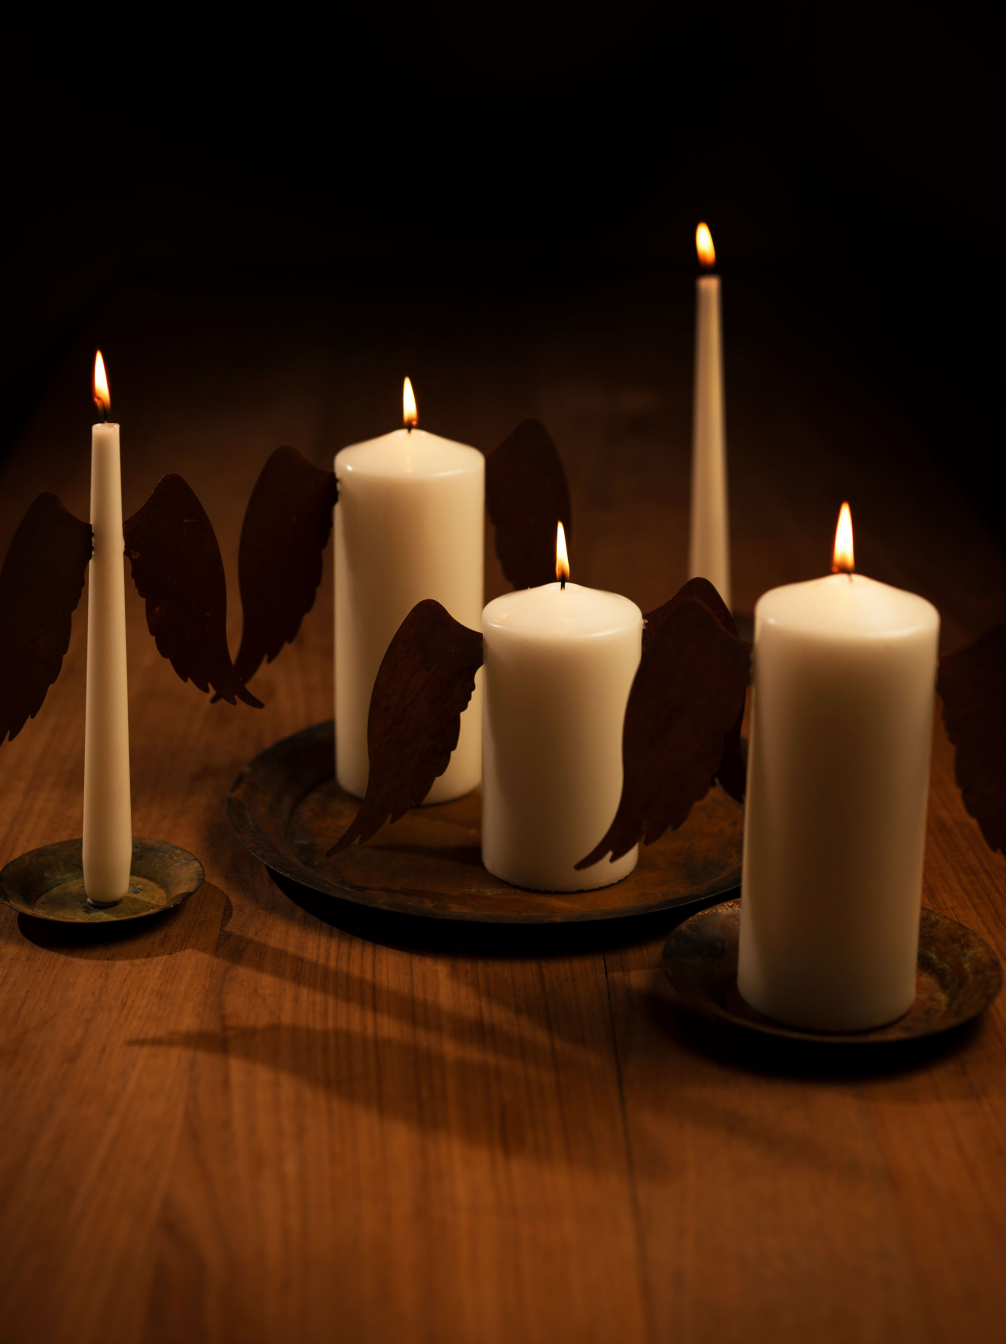 Rusty Metal Wings, Church Candles